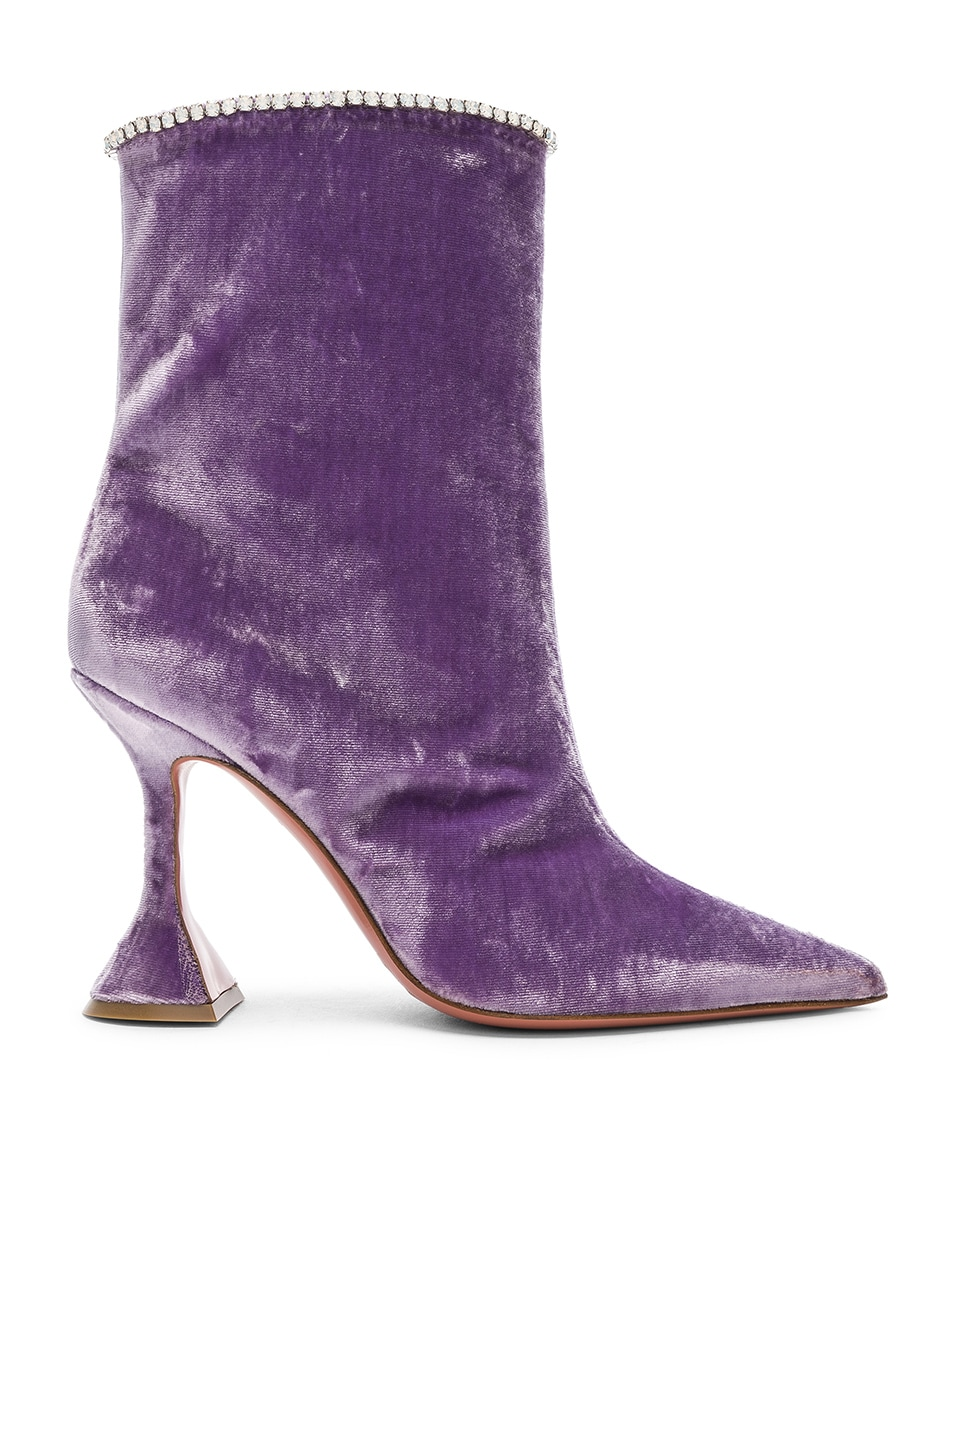 Image 1 of AMINA MUADDI Velvet Mia Boots in Lilac & Crystals